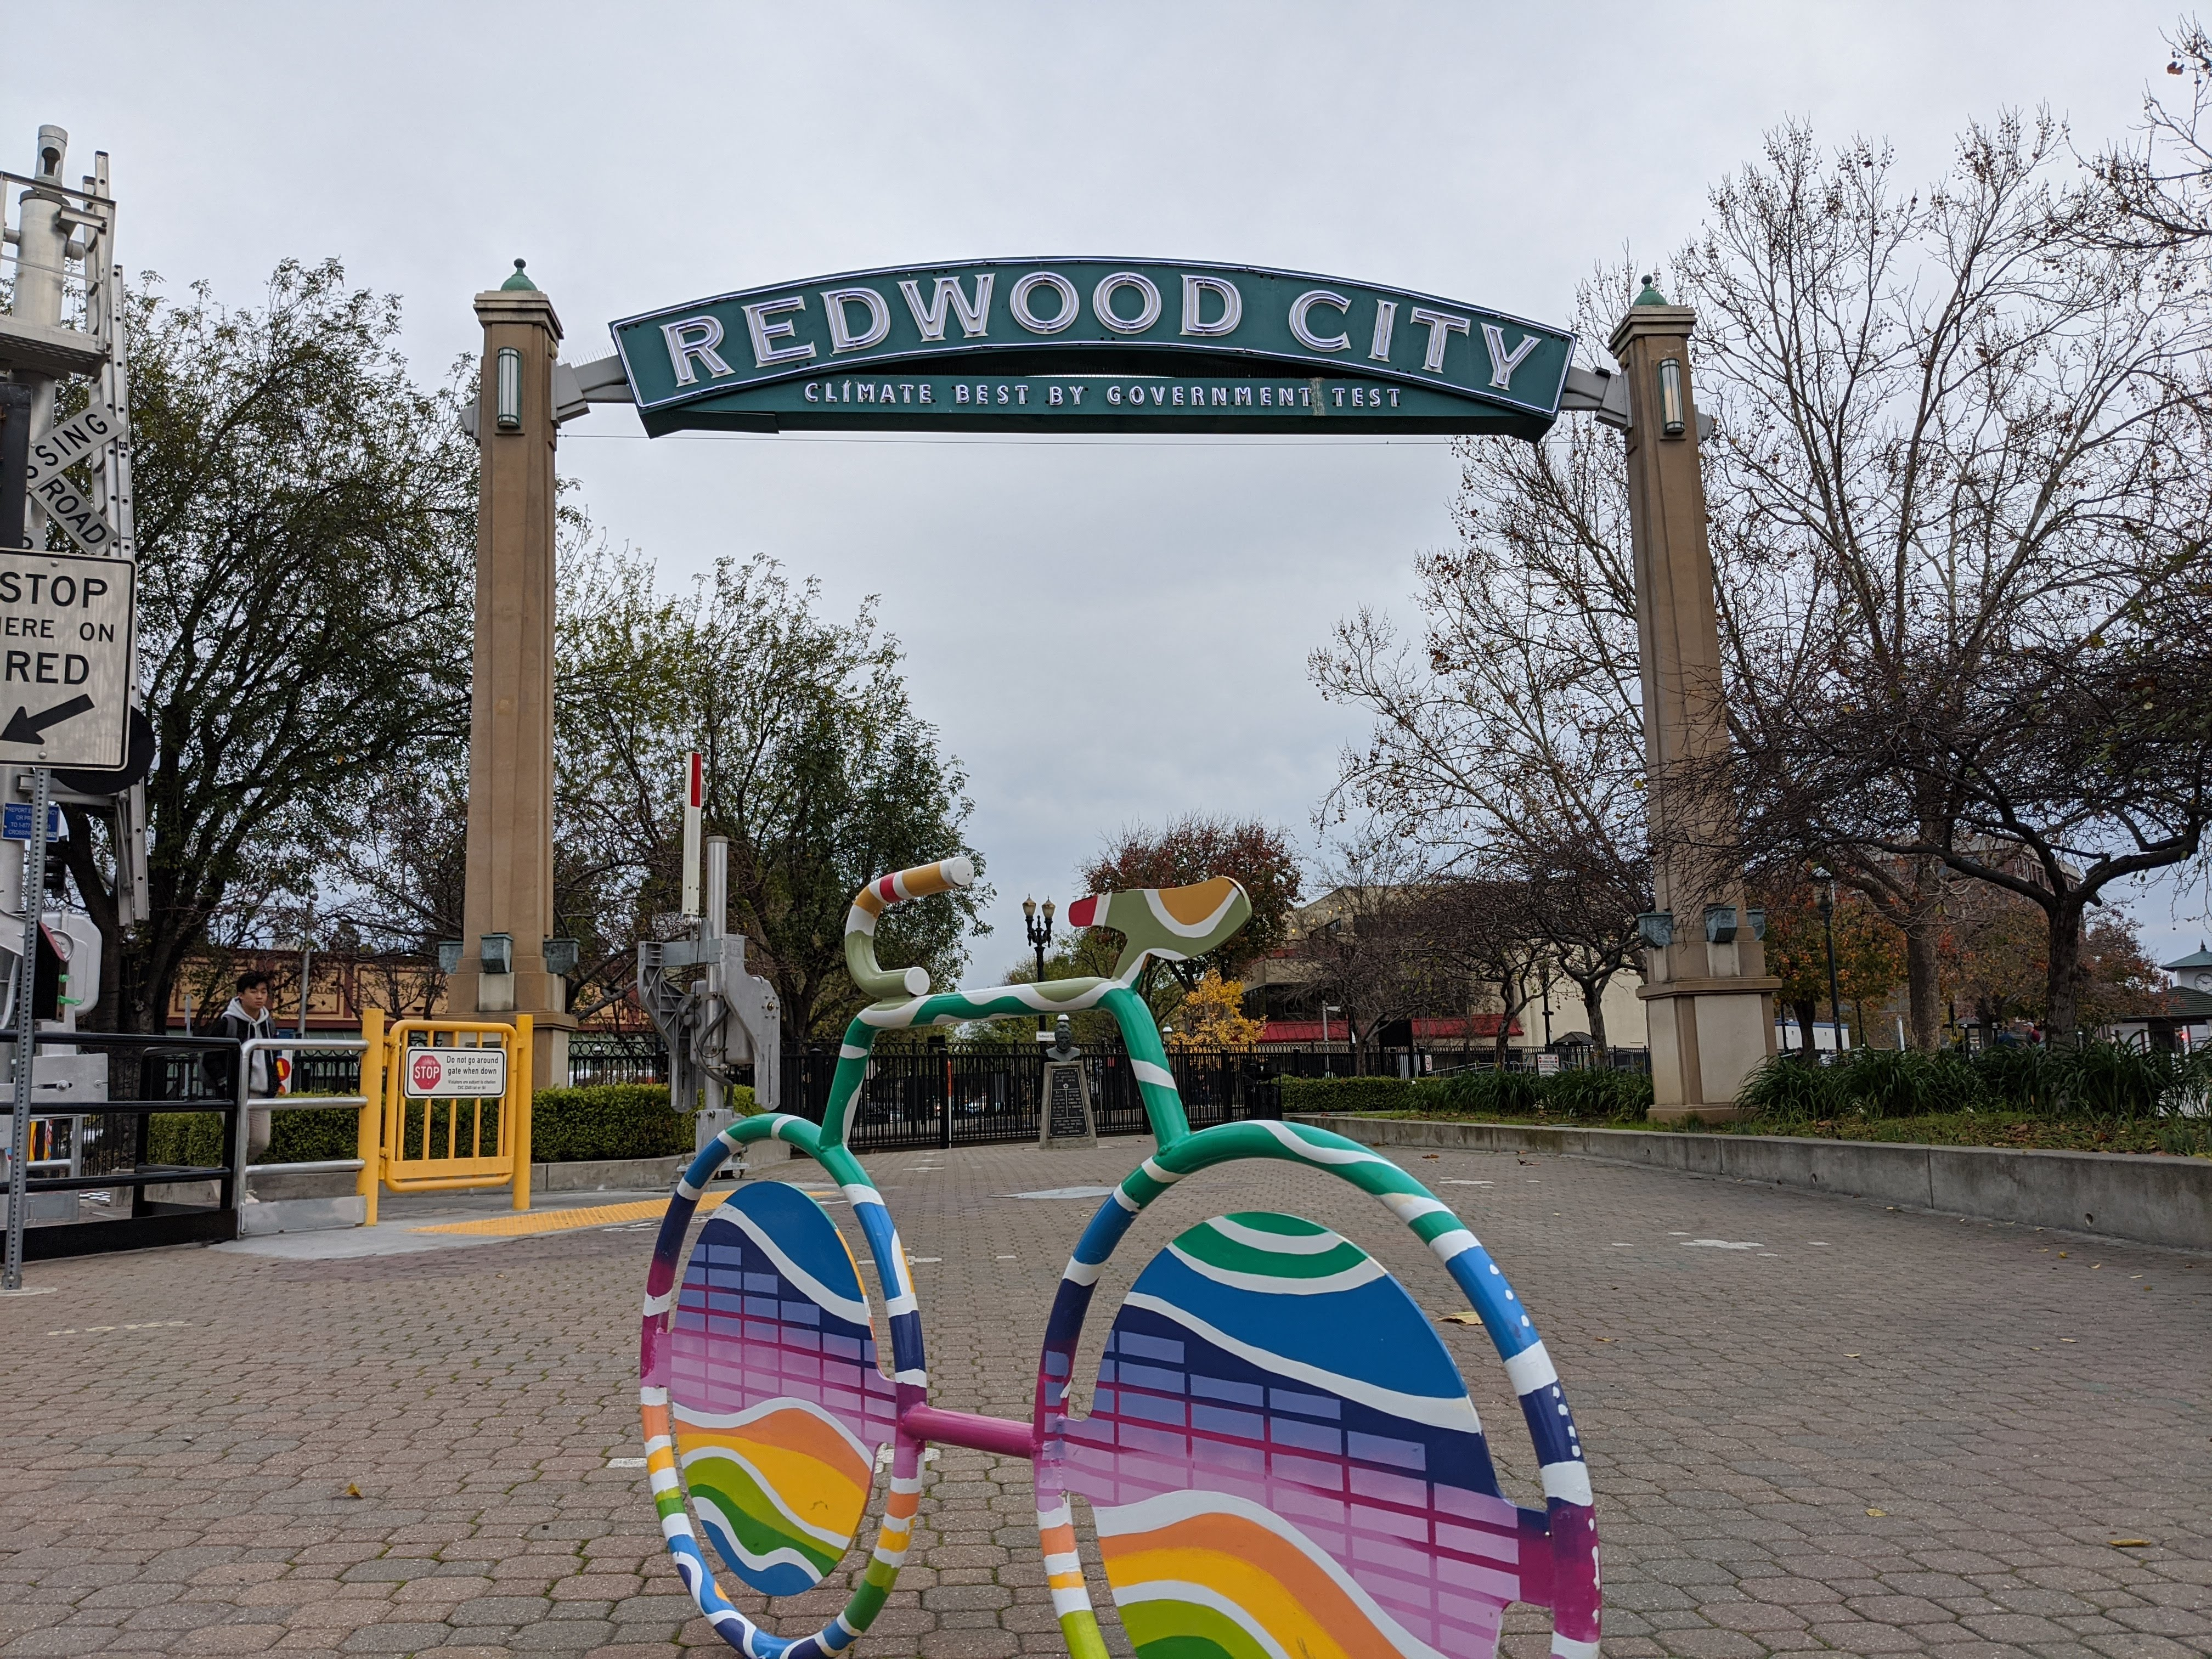 redwood city sign best weather by government test train station